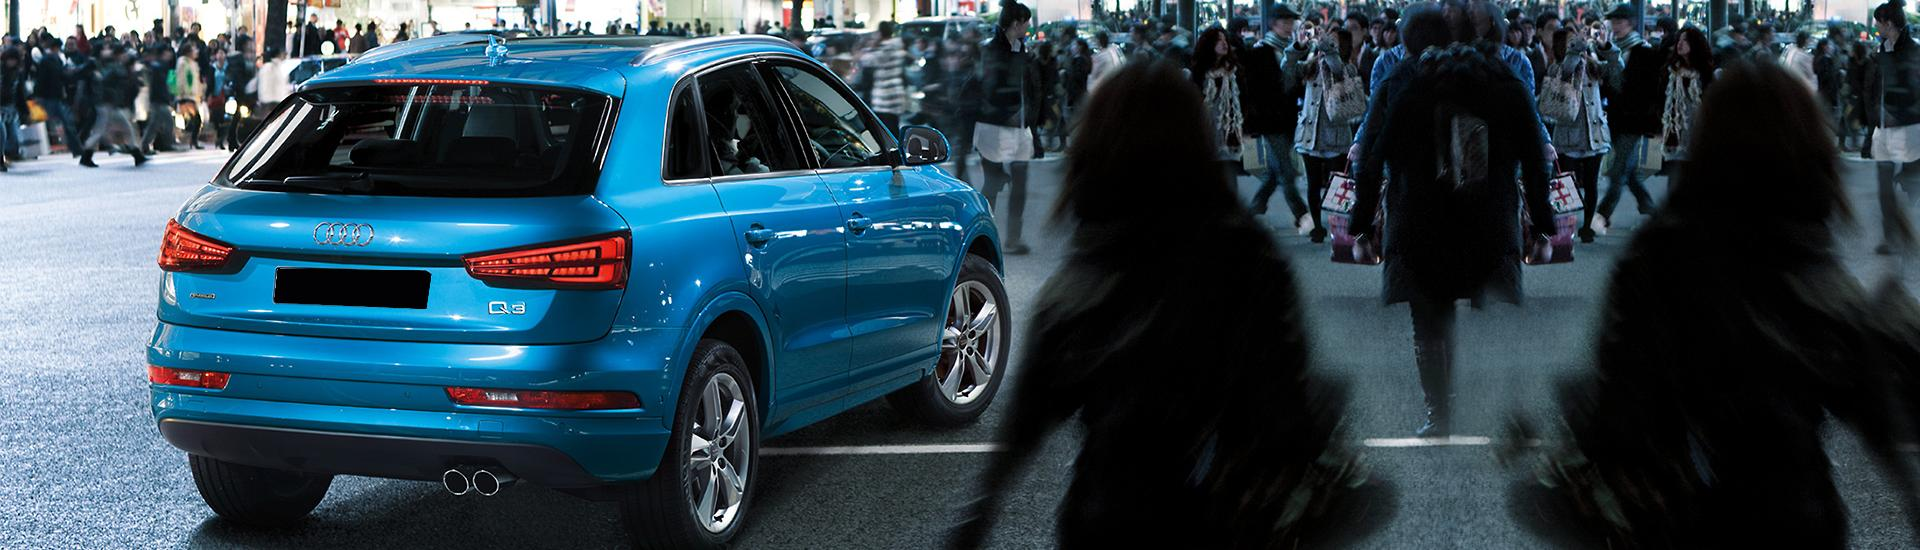 New Audi Q SUV Cars For Sale Carsalescomau - Audi q3 for sale